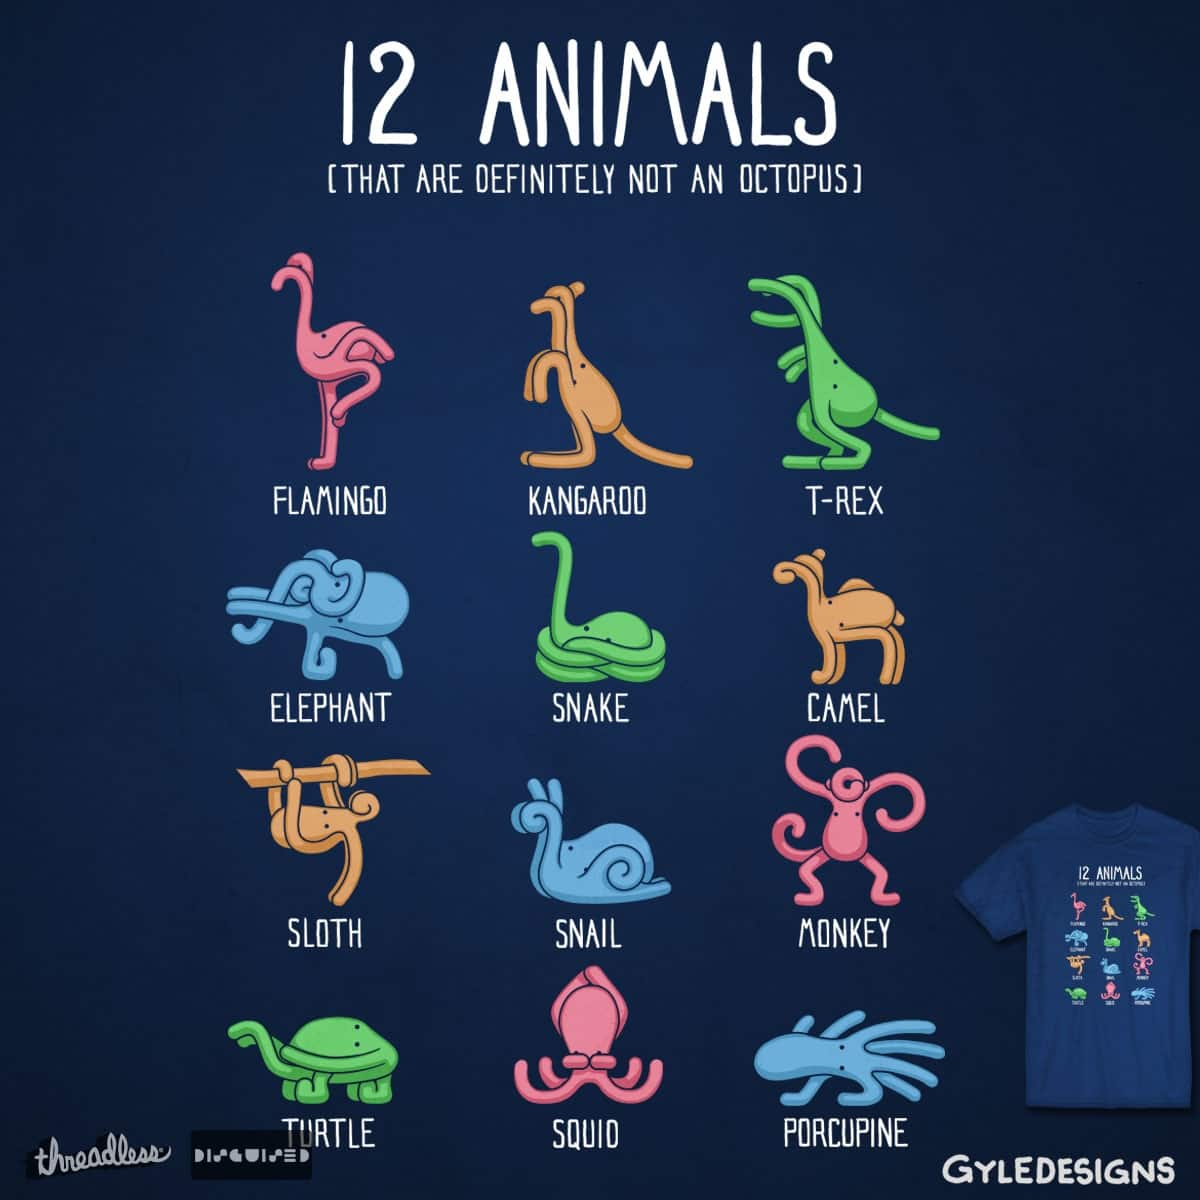 12 Animals (That Are Definitely Not An Octopus) by GyleDesigns on Threadless